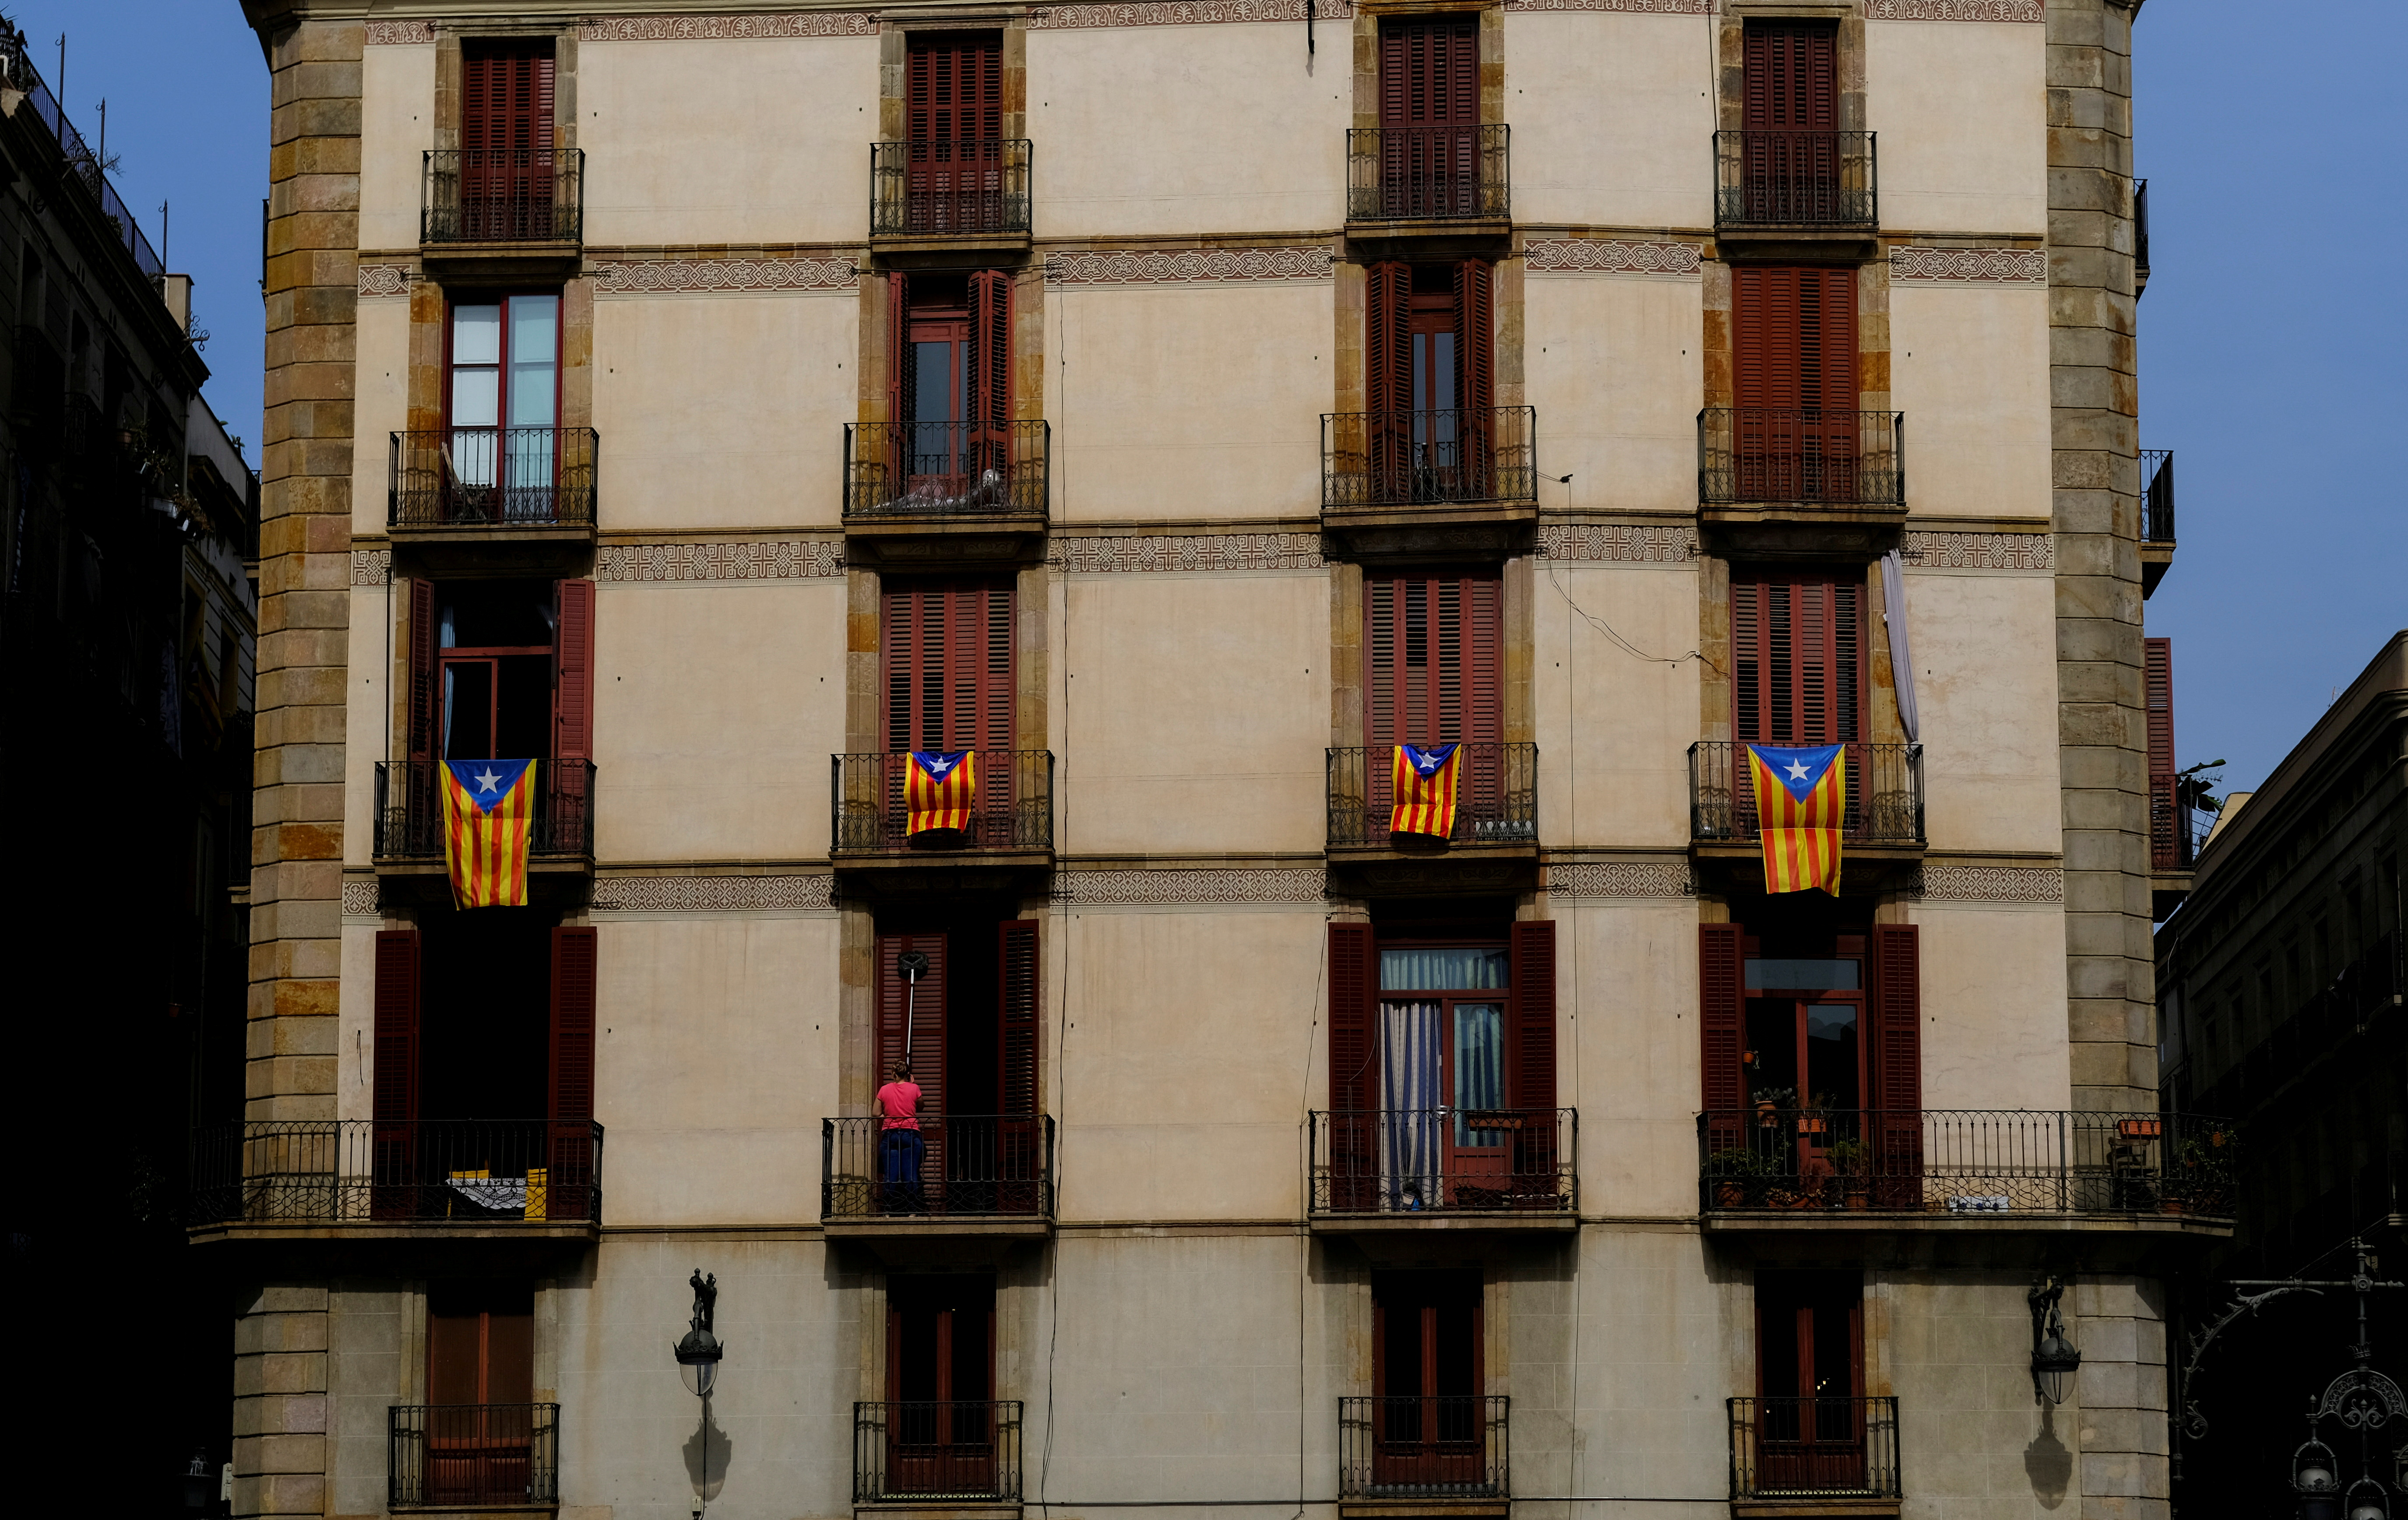 A woman cleans the windows of a house underneath Esteladas (Catalan separatist flags) hanging on balconies at Sant Jaume Square, a day before a meeting between the Catalan regional President Pere Aragones and the Spanish Prime Minister Pedro Sanchez at Palau de la Generalitat in Barcelona, Spain September 14, 2021. REUTERS/Nacho Doce